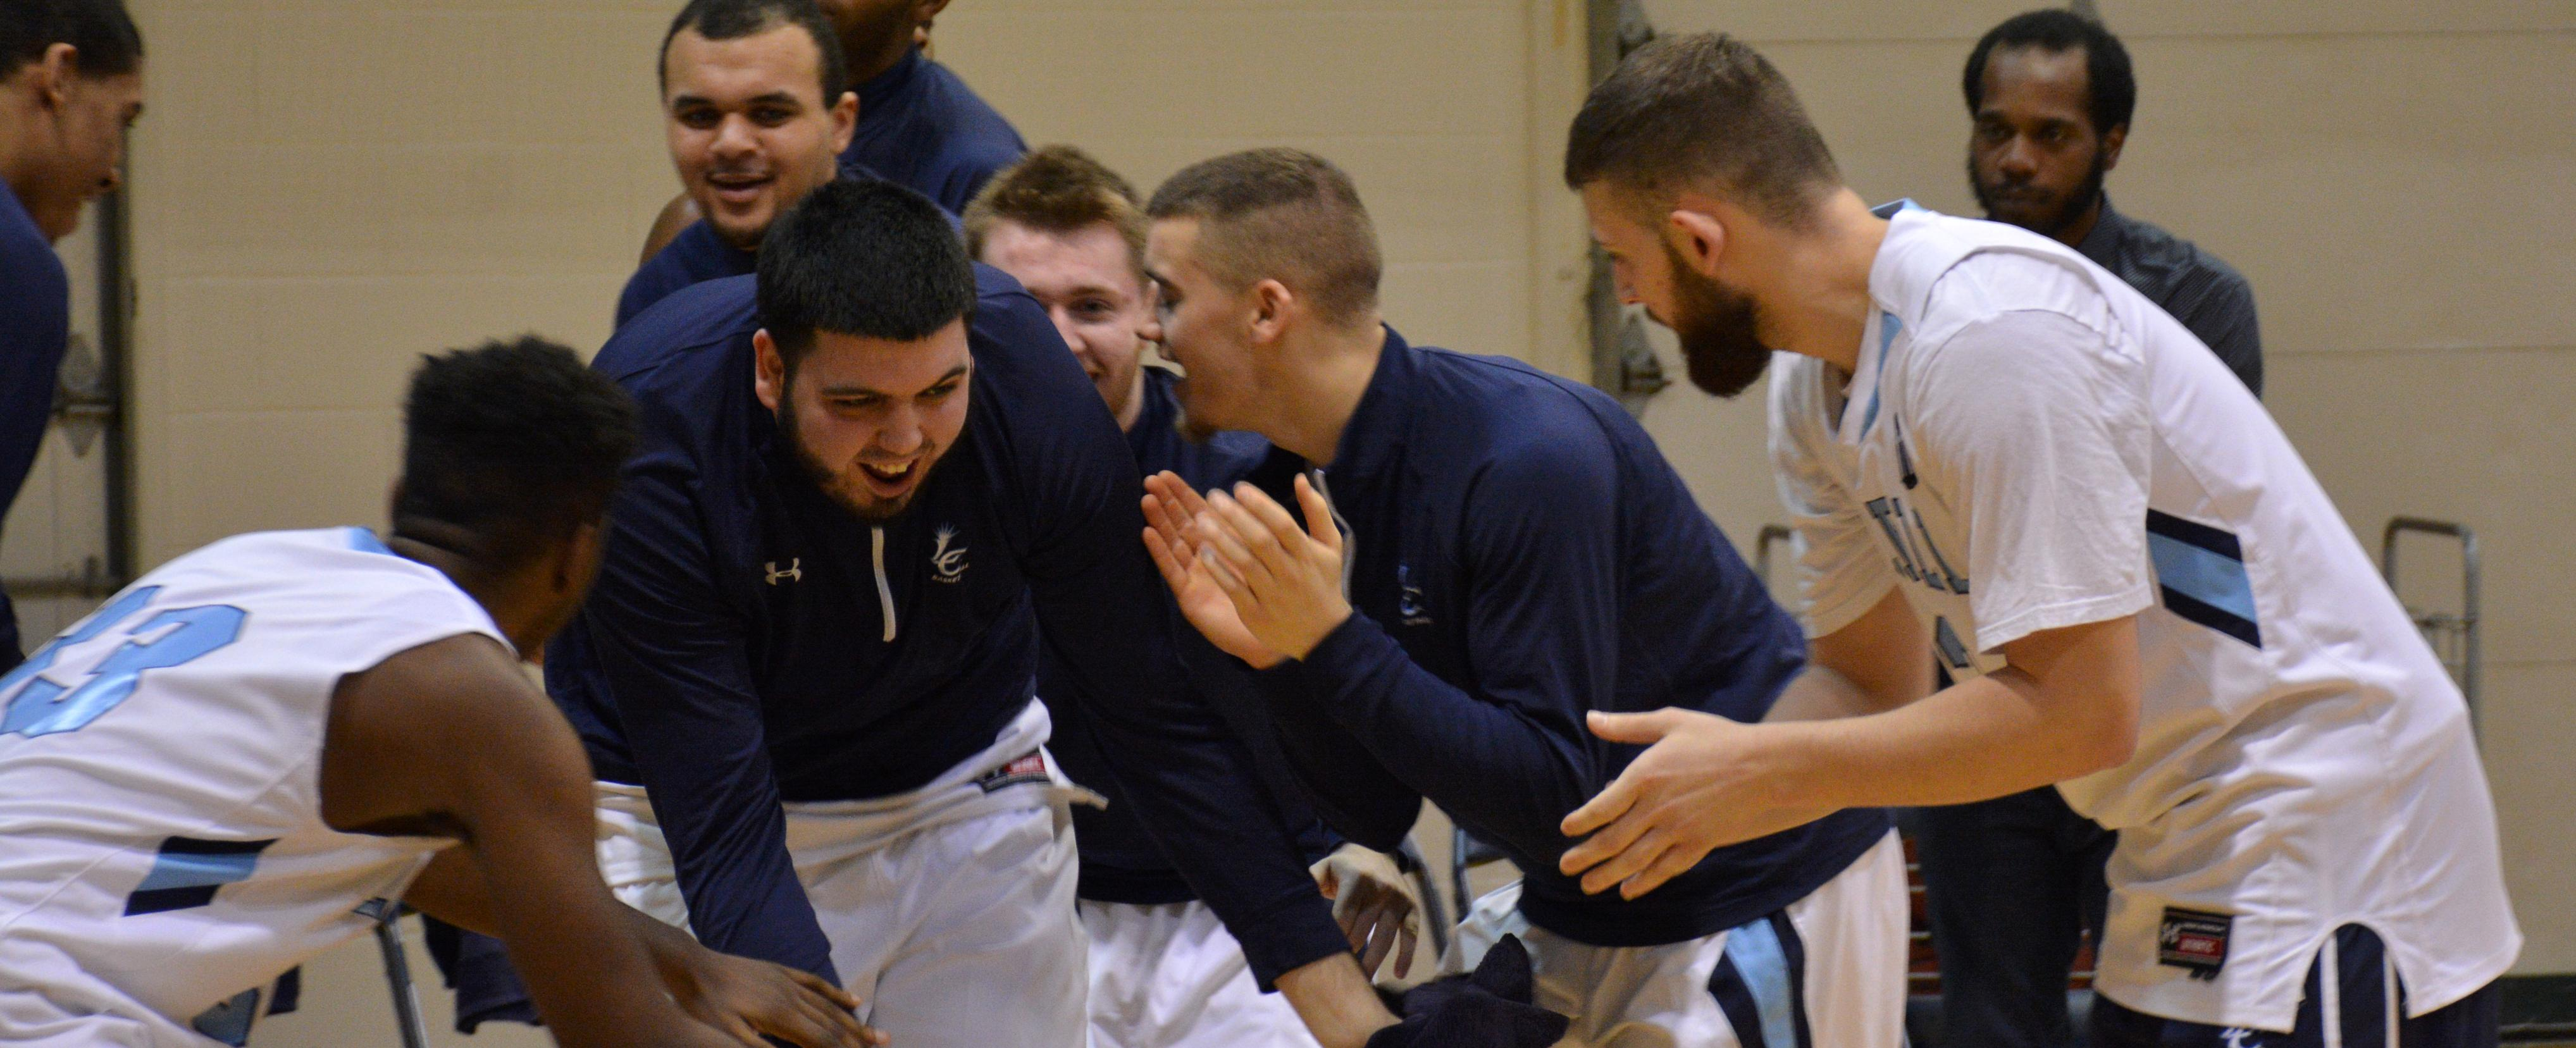 Men's Basketball Hangs on for 80-75 Victory Against St. Joe's